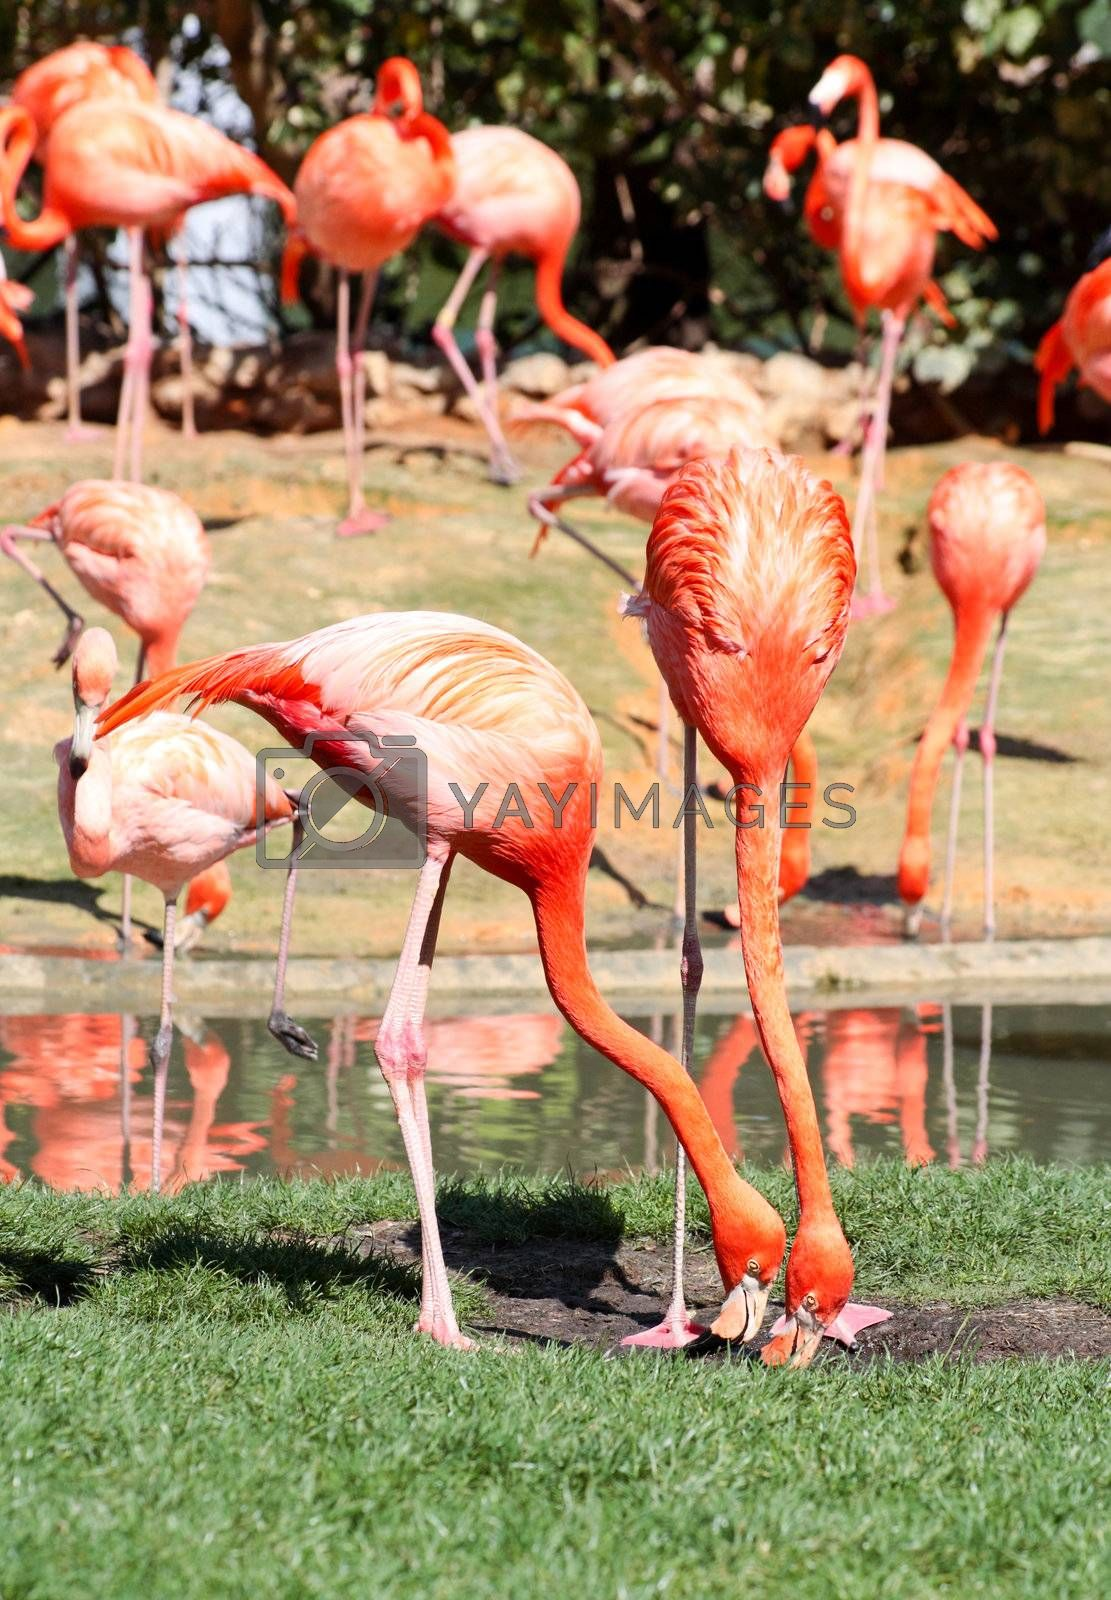 red flamingo in a park in Florida USA